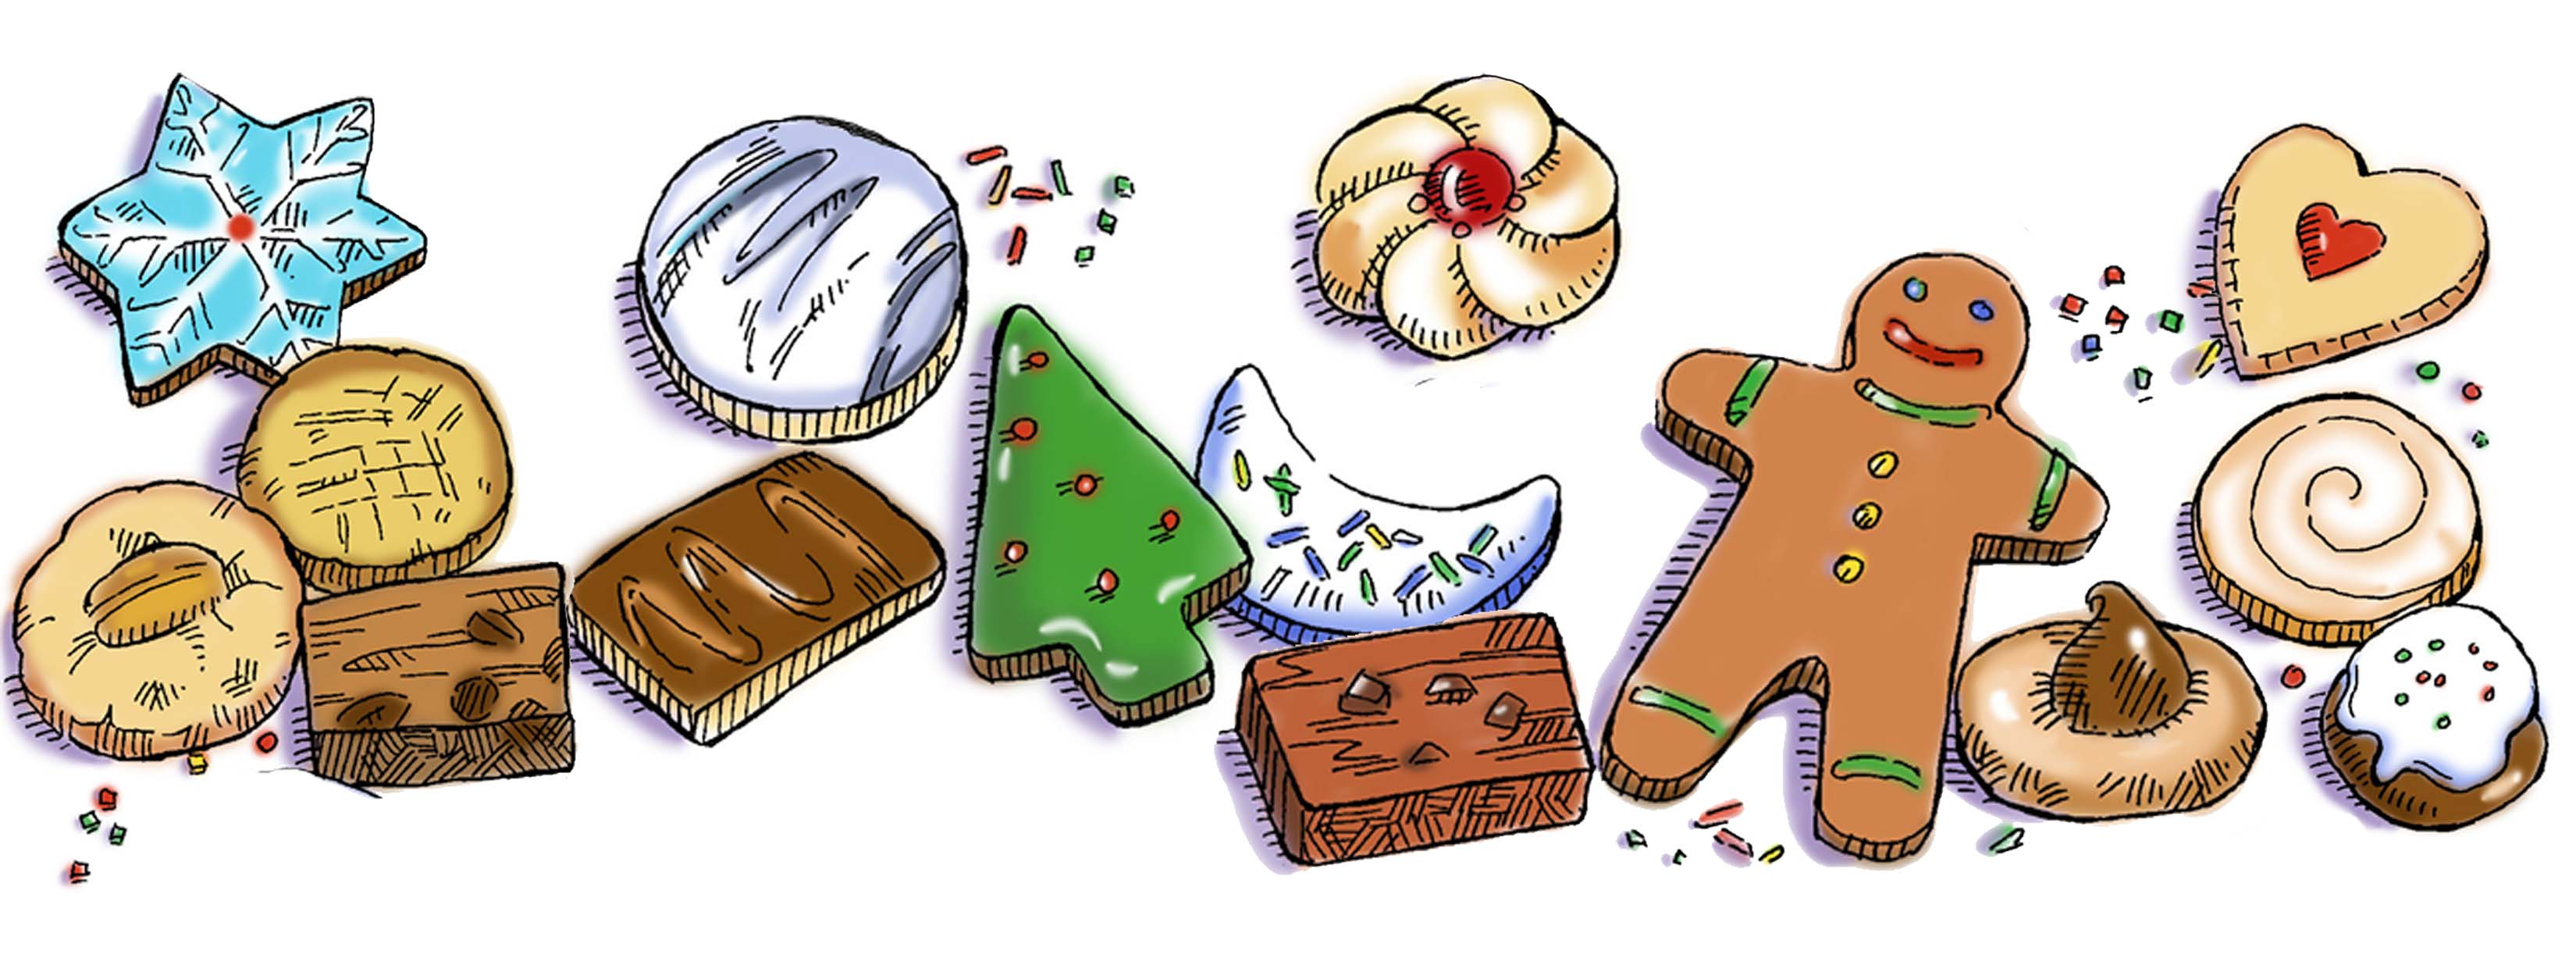 Christmas cookie exchange clipart graphic free Calvary Christmas Cookie Exchange graphic free